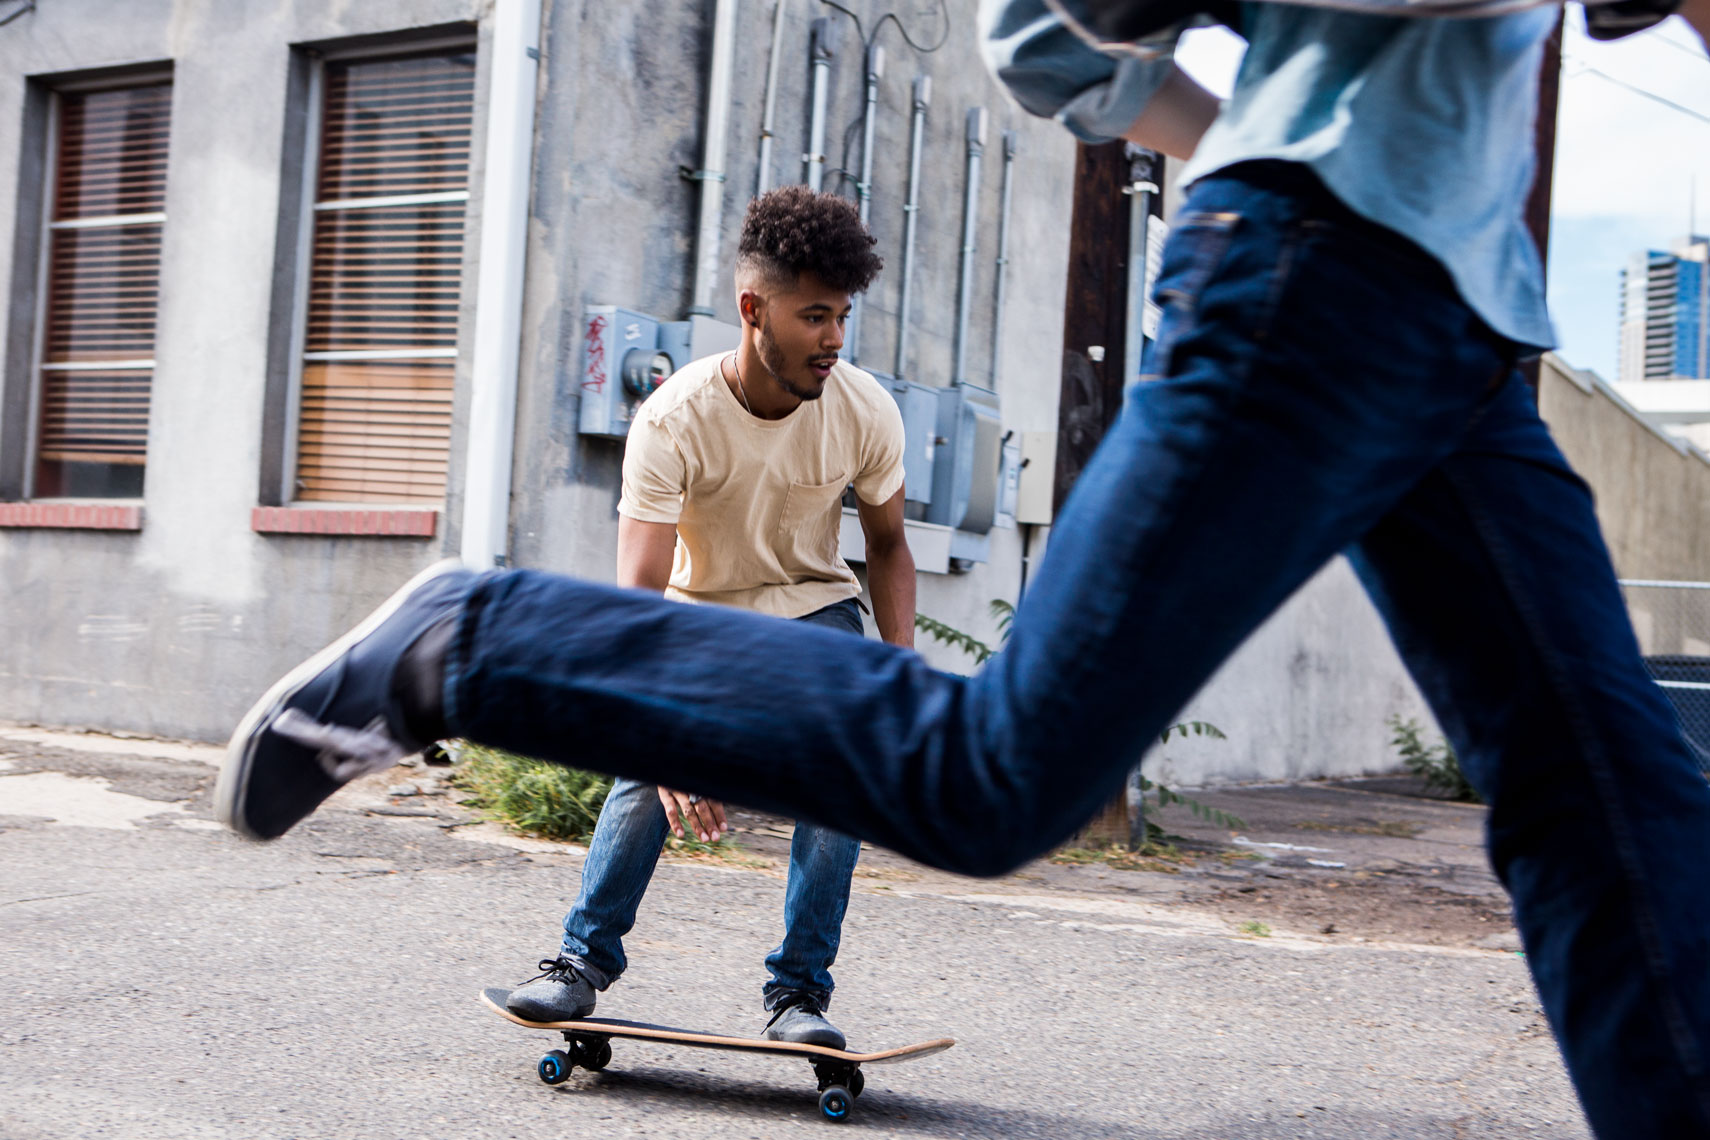 boys skateboarding through streets